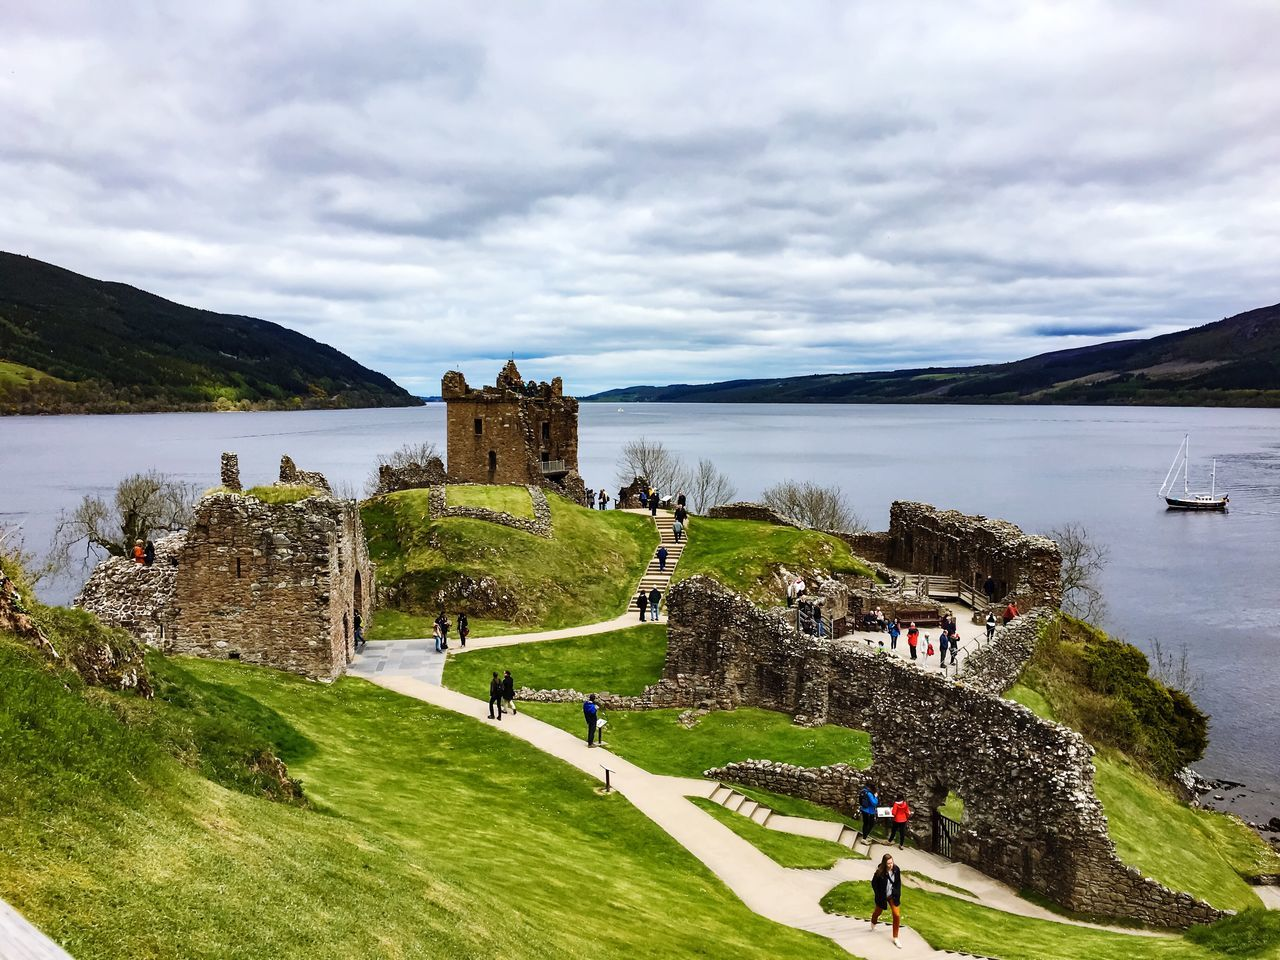 Sky, cloud,water, Architecture Ruined Building Ruined Castle UrquhartCastle Loch Ness Mountain Overcast Weather ❤ , Nature Tourism Tranquility Beauty In Nature Landscape_photography Travel Destinations Unrecognizable Person Outdoor Photography First Eyeem Photo EyeEm Best Shots